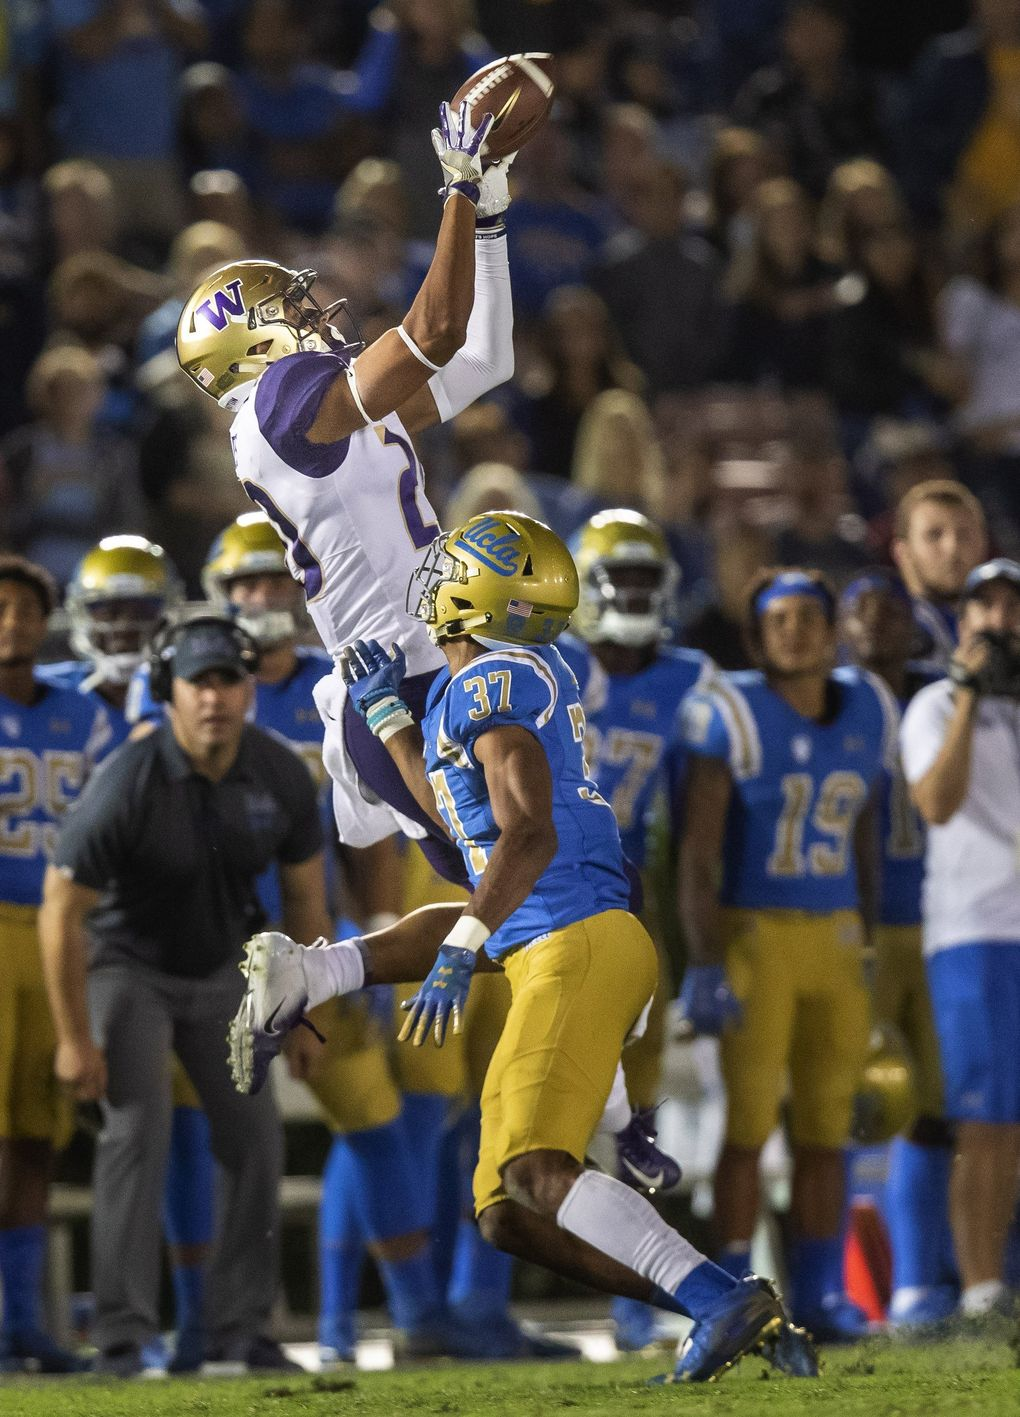 On 3rd and 6 from their own 26-yard line, Jake Browning connects with Ty Jones for a first down at the UCLA 43-yard line. (Dean Rutz / The Seattle Times)